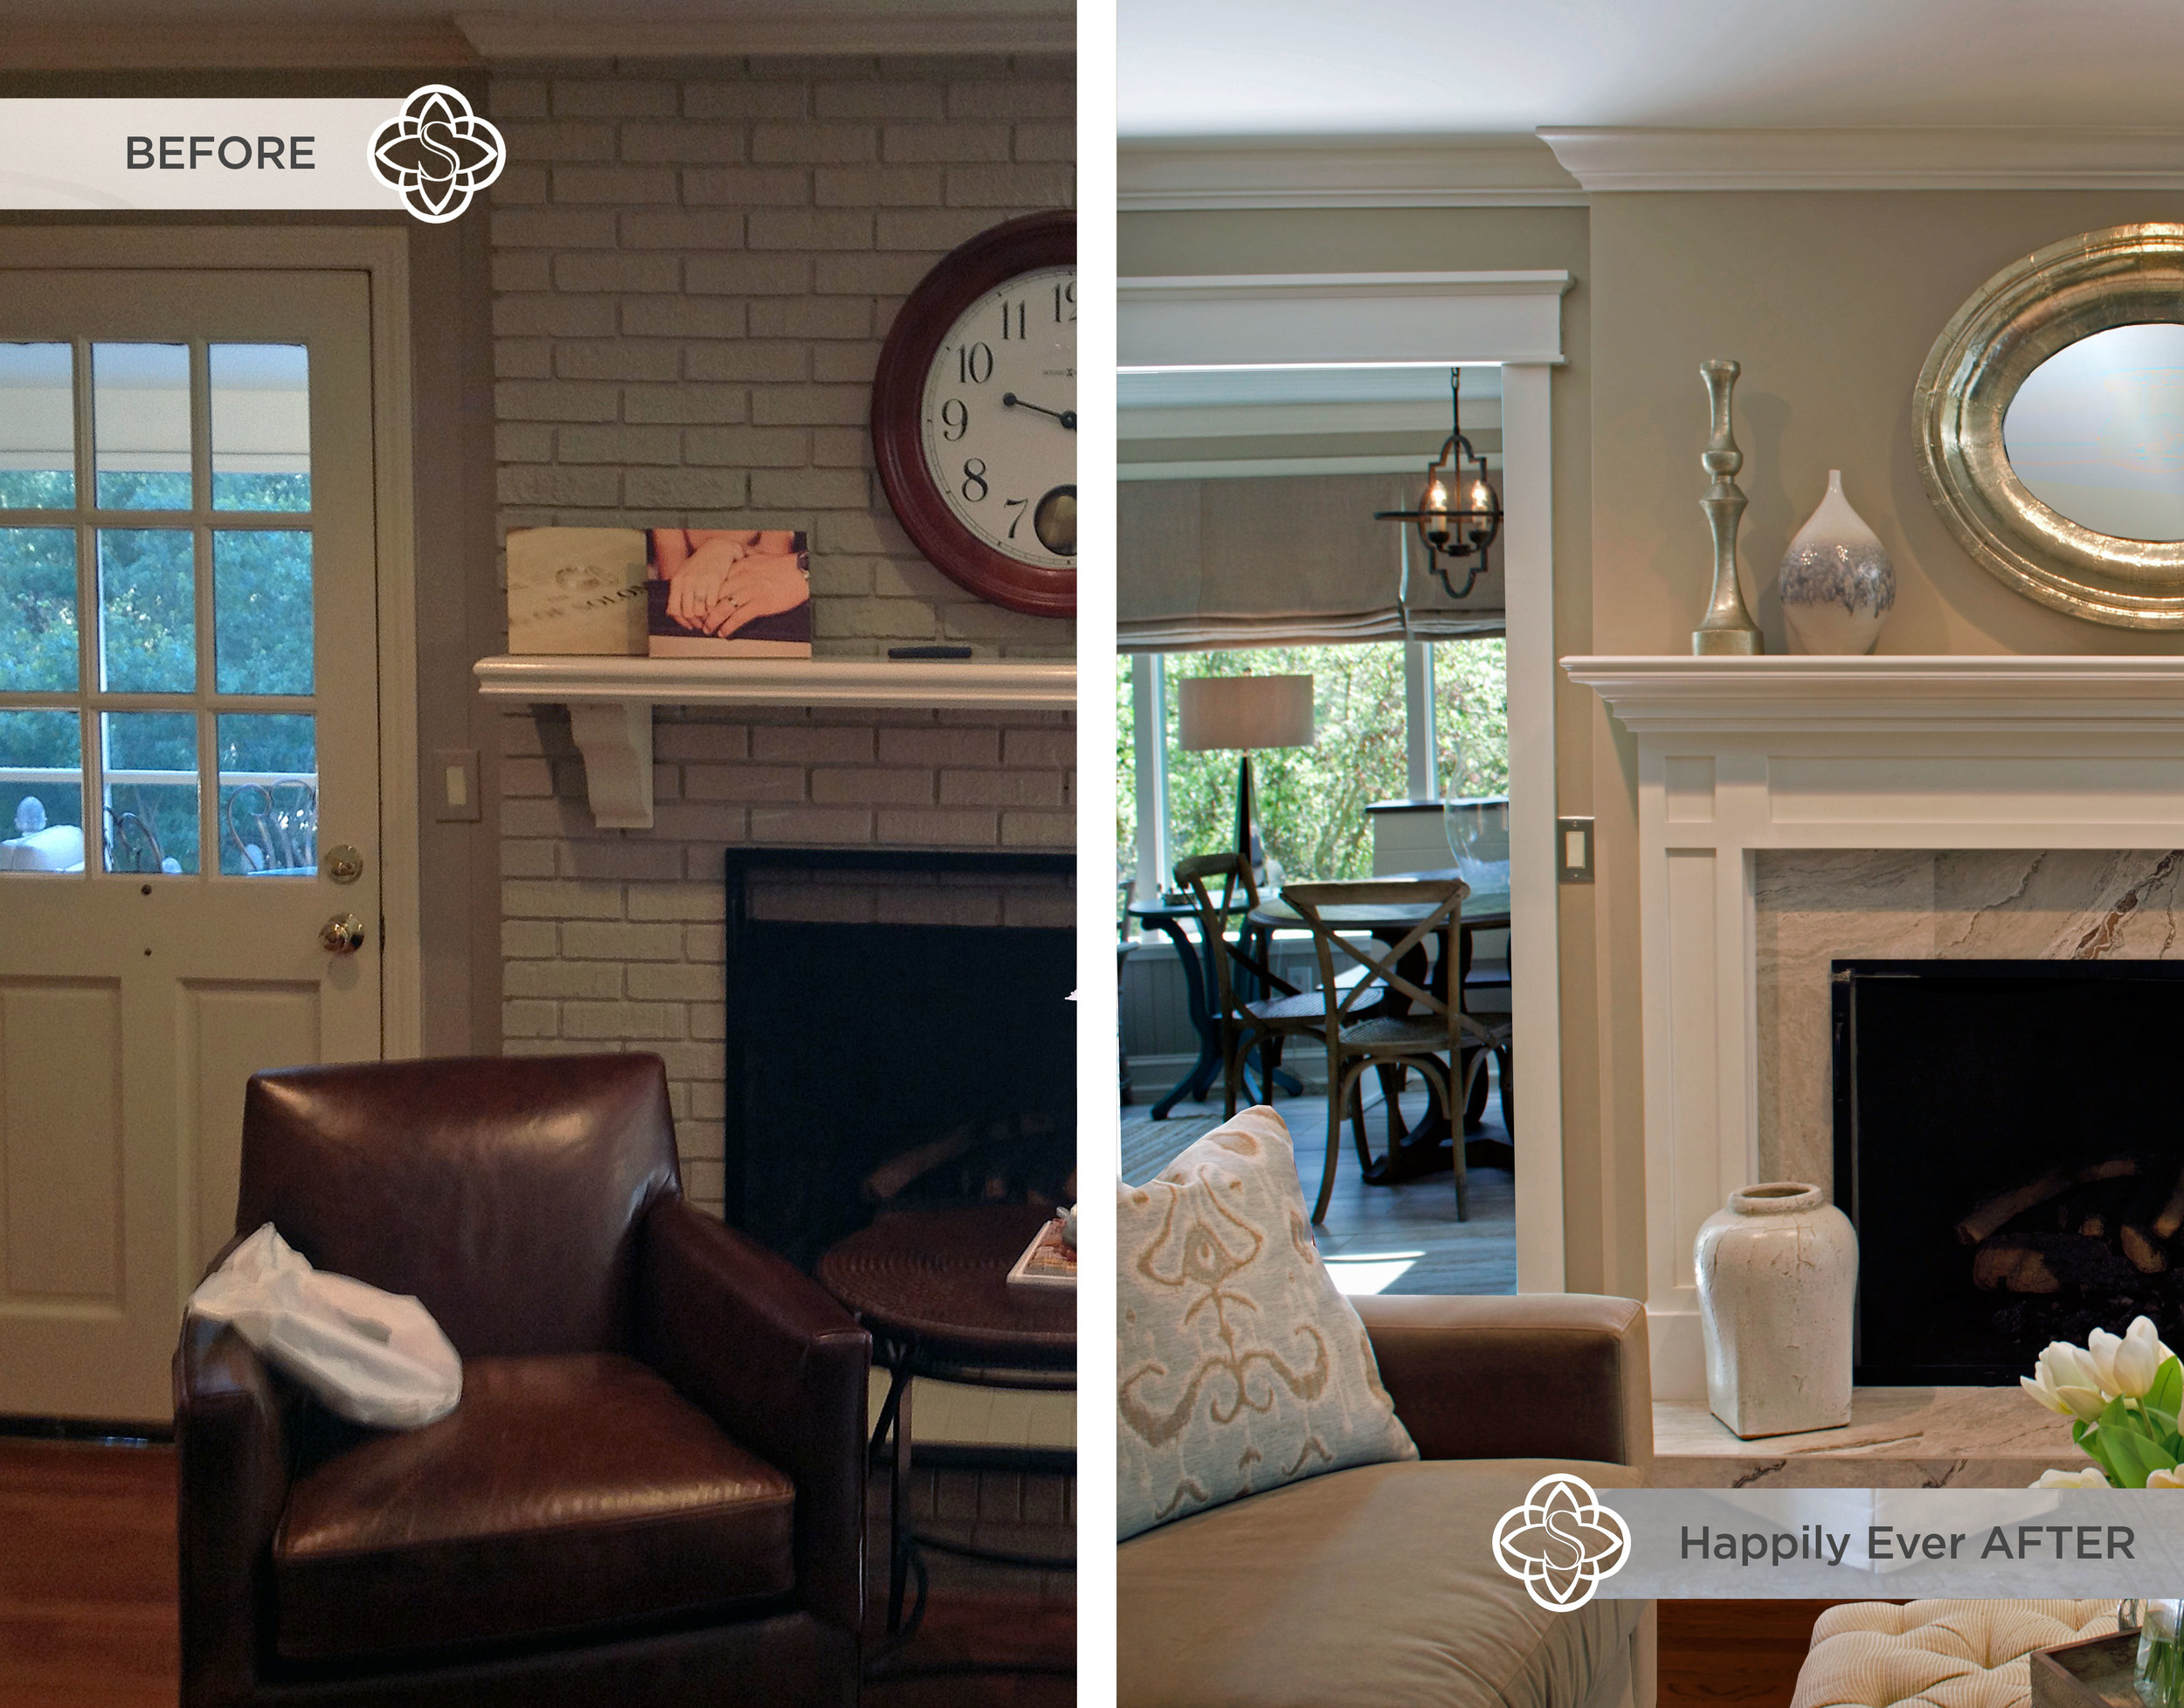 BEFORE AFTER FIREPLACE 2_edited-1.jpg